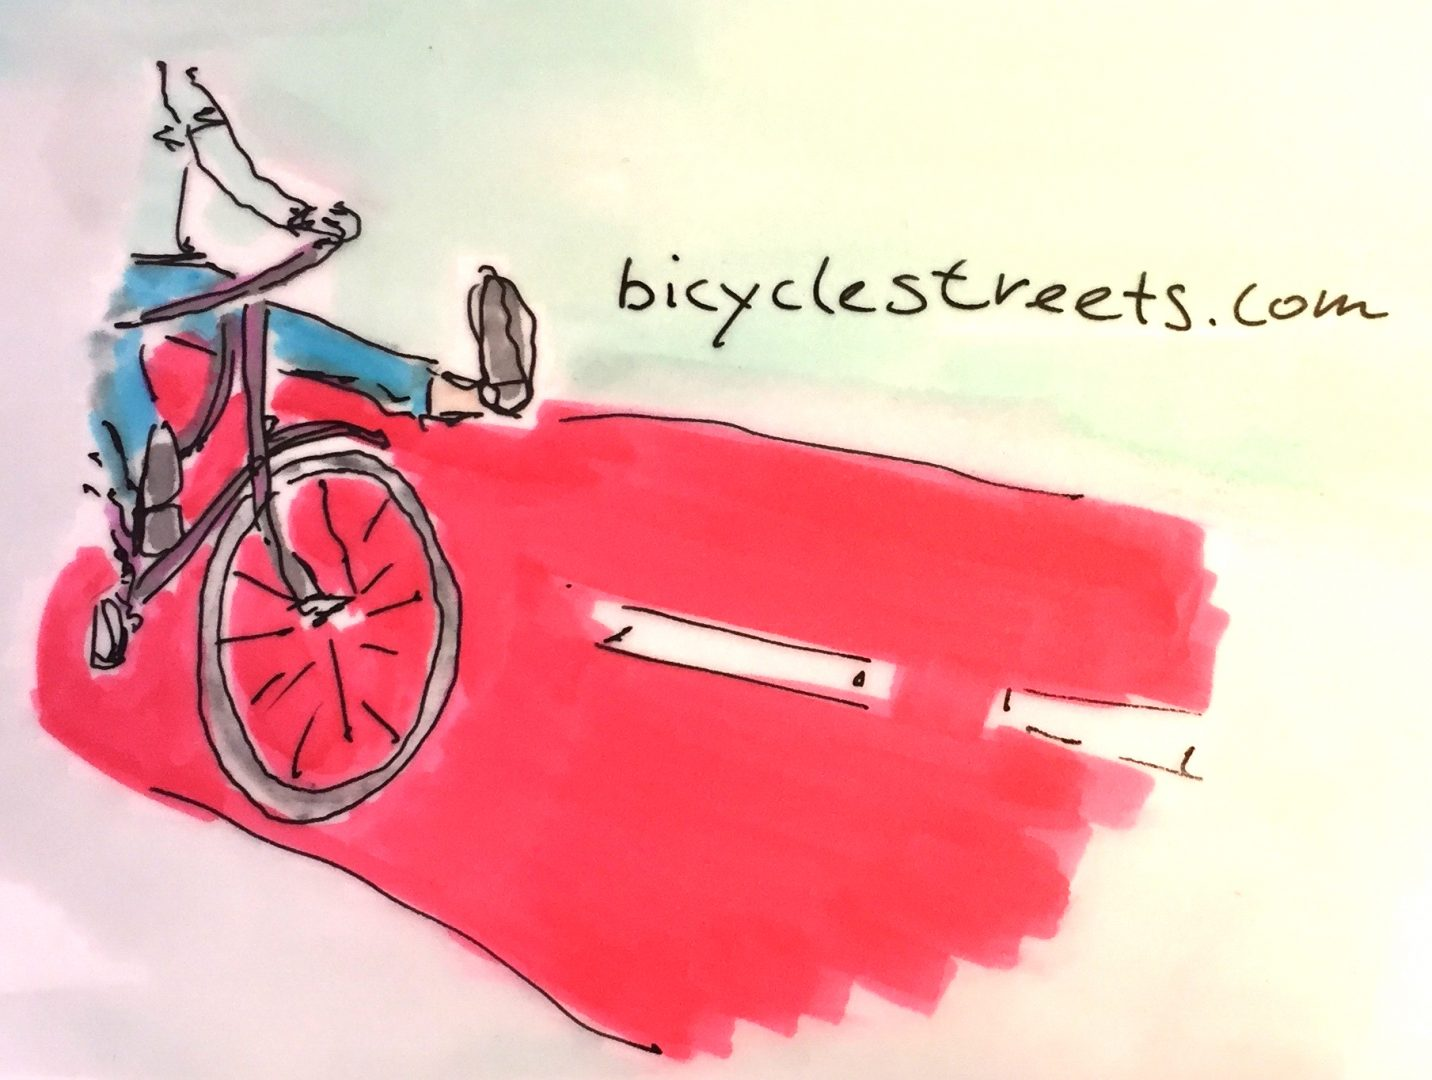 BICYCLESTREETS - On track